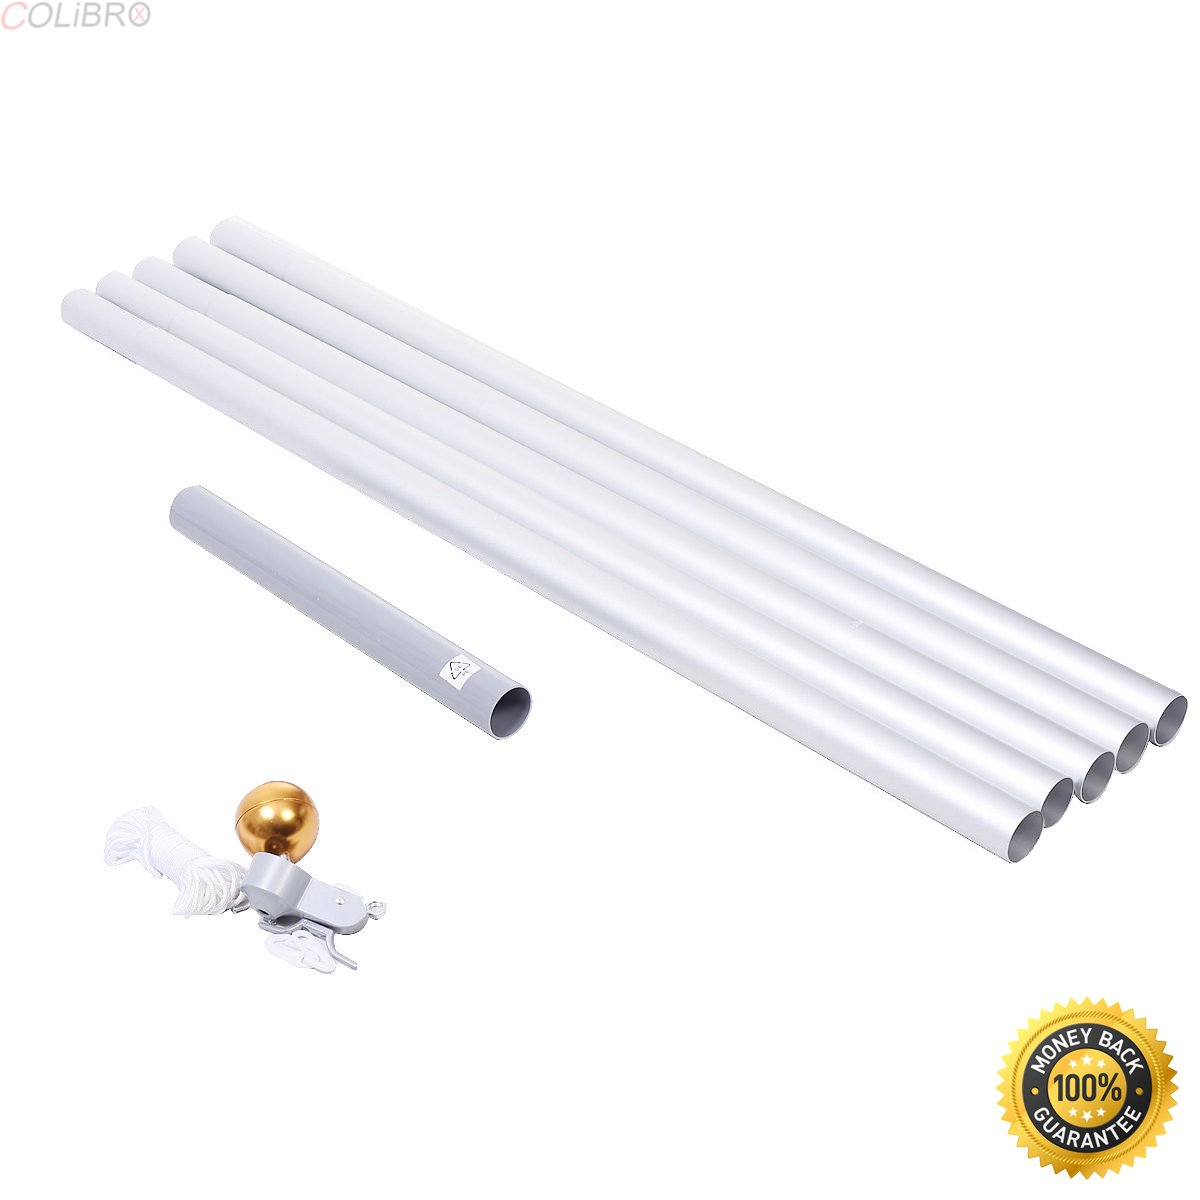 COLIBROX--20ft Aluminum Sectional Flagpole Kit Outdoor Halyard Pole + 1PC US American Flag,commercial aluminum flagpoles,20 ft commercial flagpole,home depot flagpole,Aluminum Sectional Flagpole,Flag